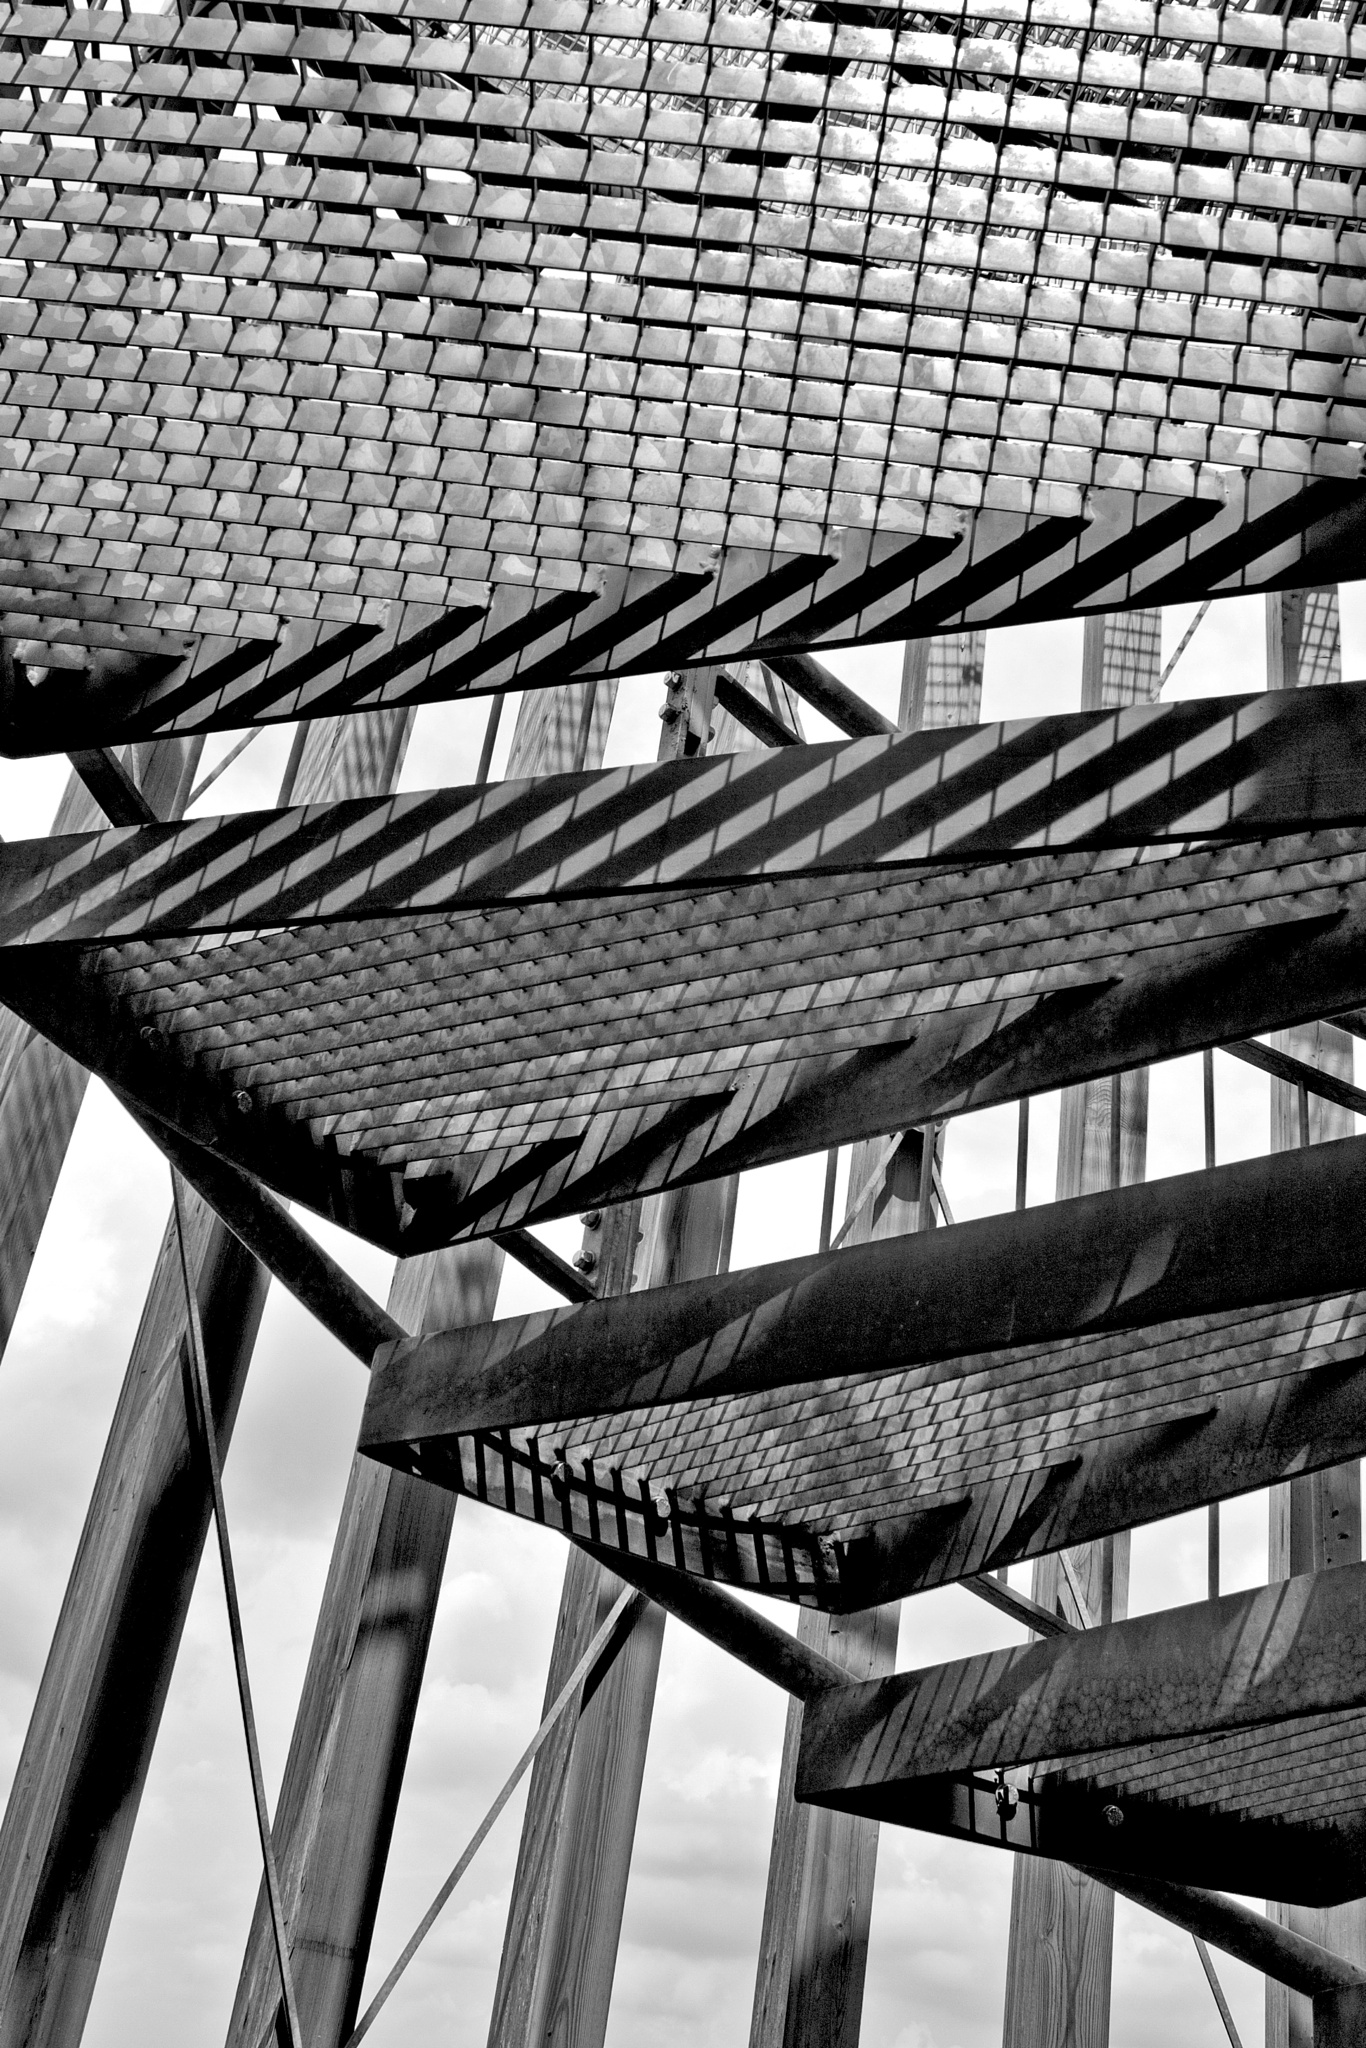 Structure the observation tower by Ines Linke